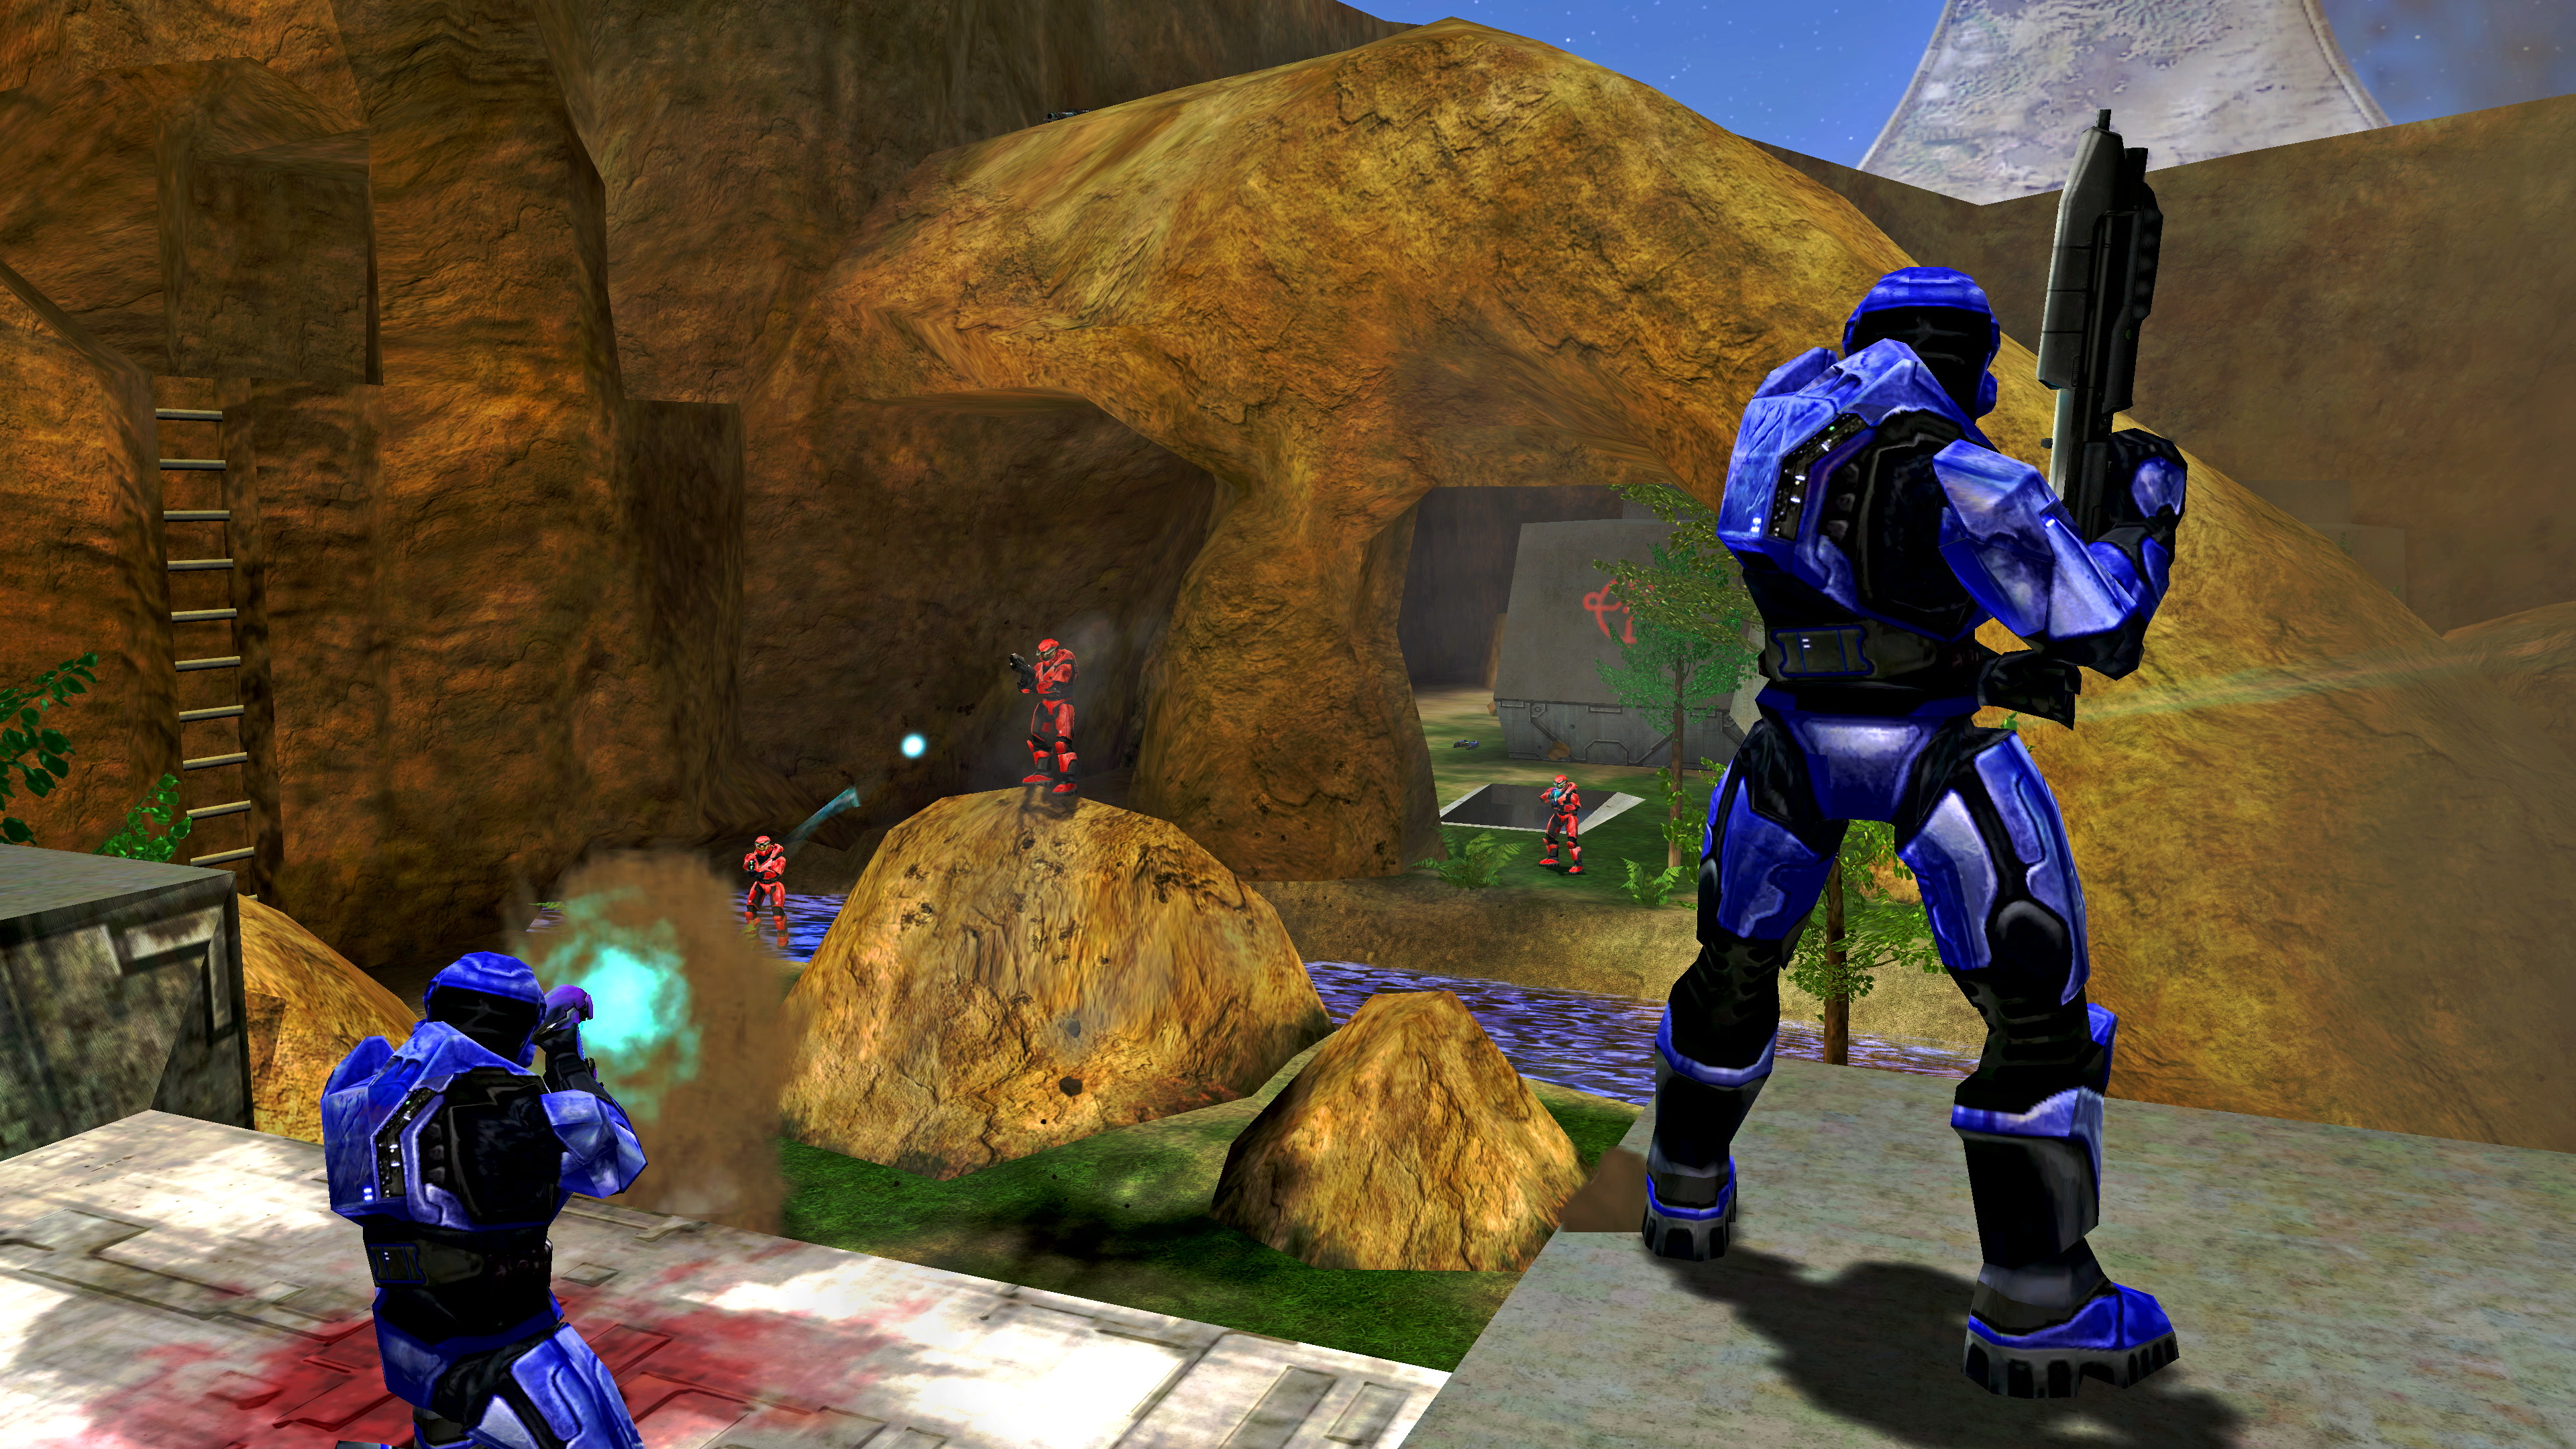 Halo: Combat Evolved just got added to Master Chief Collection on PC screenshot